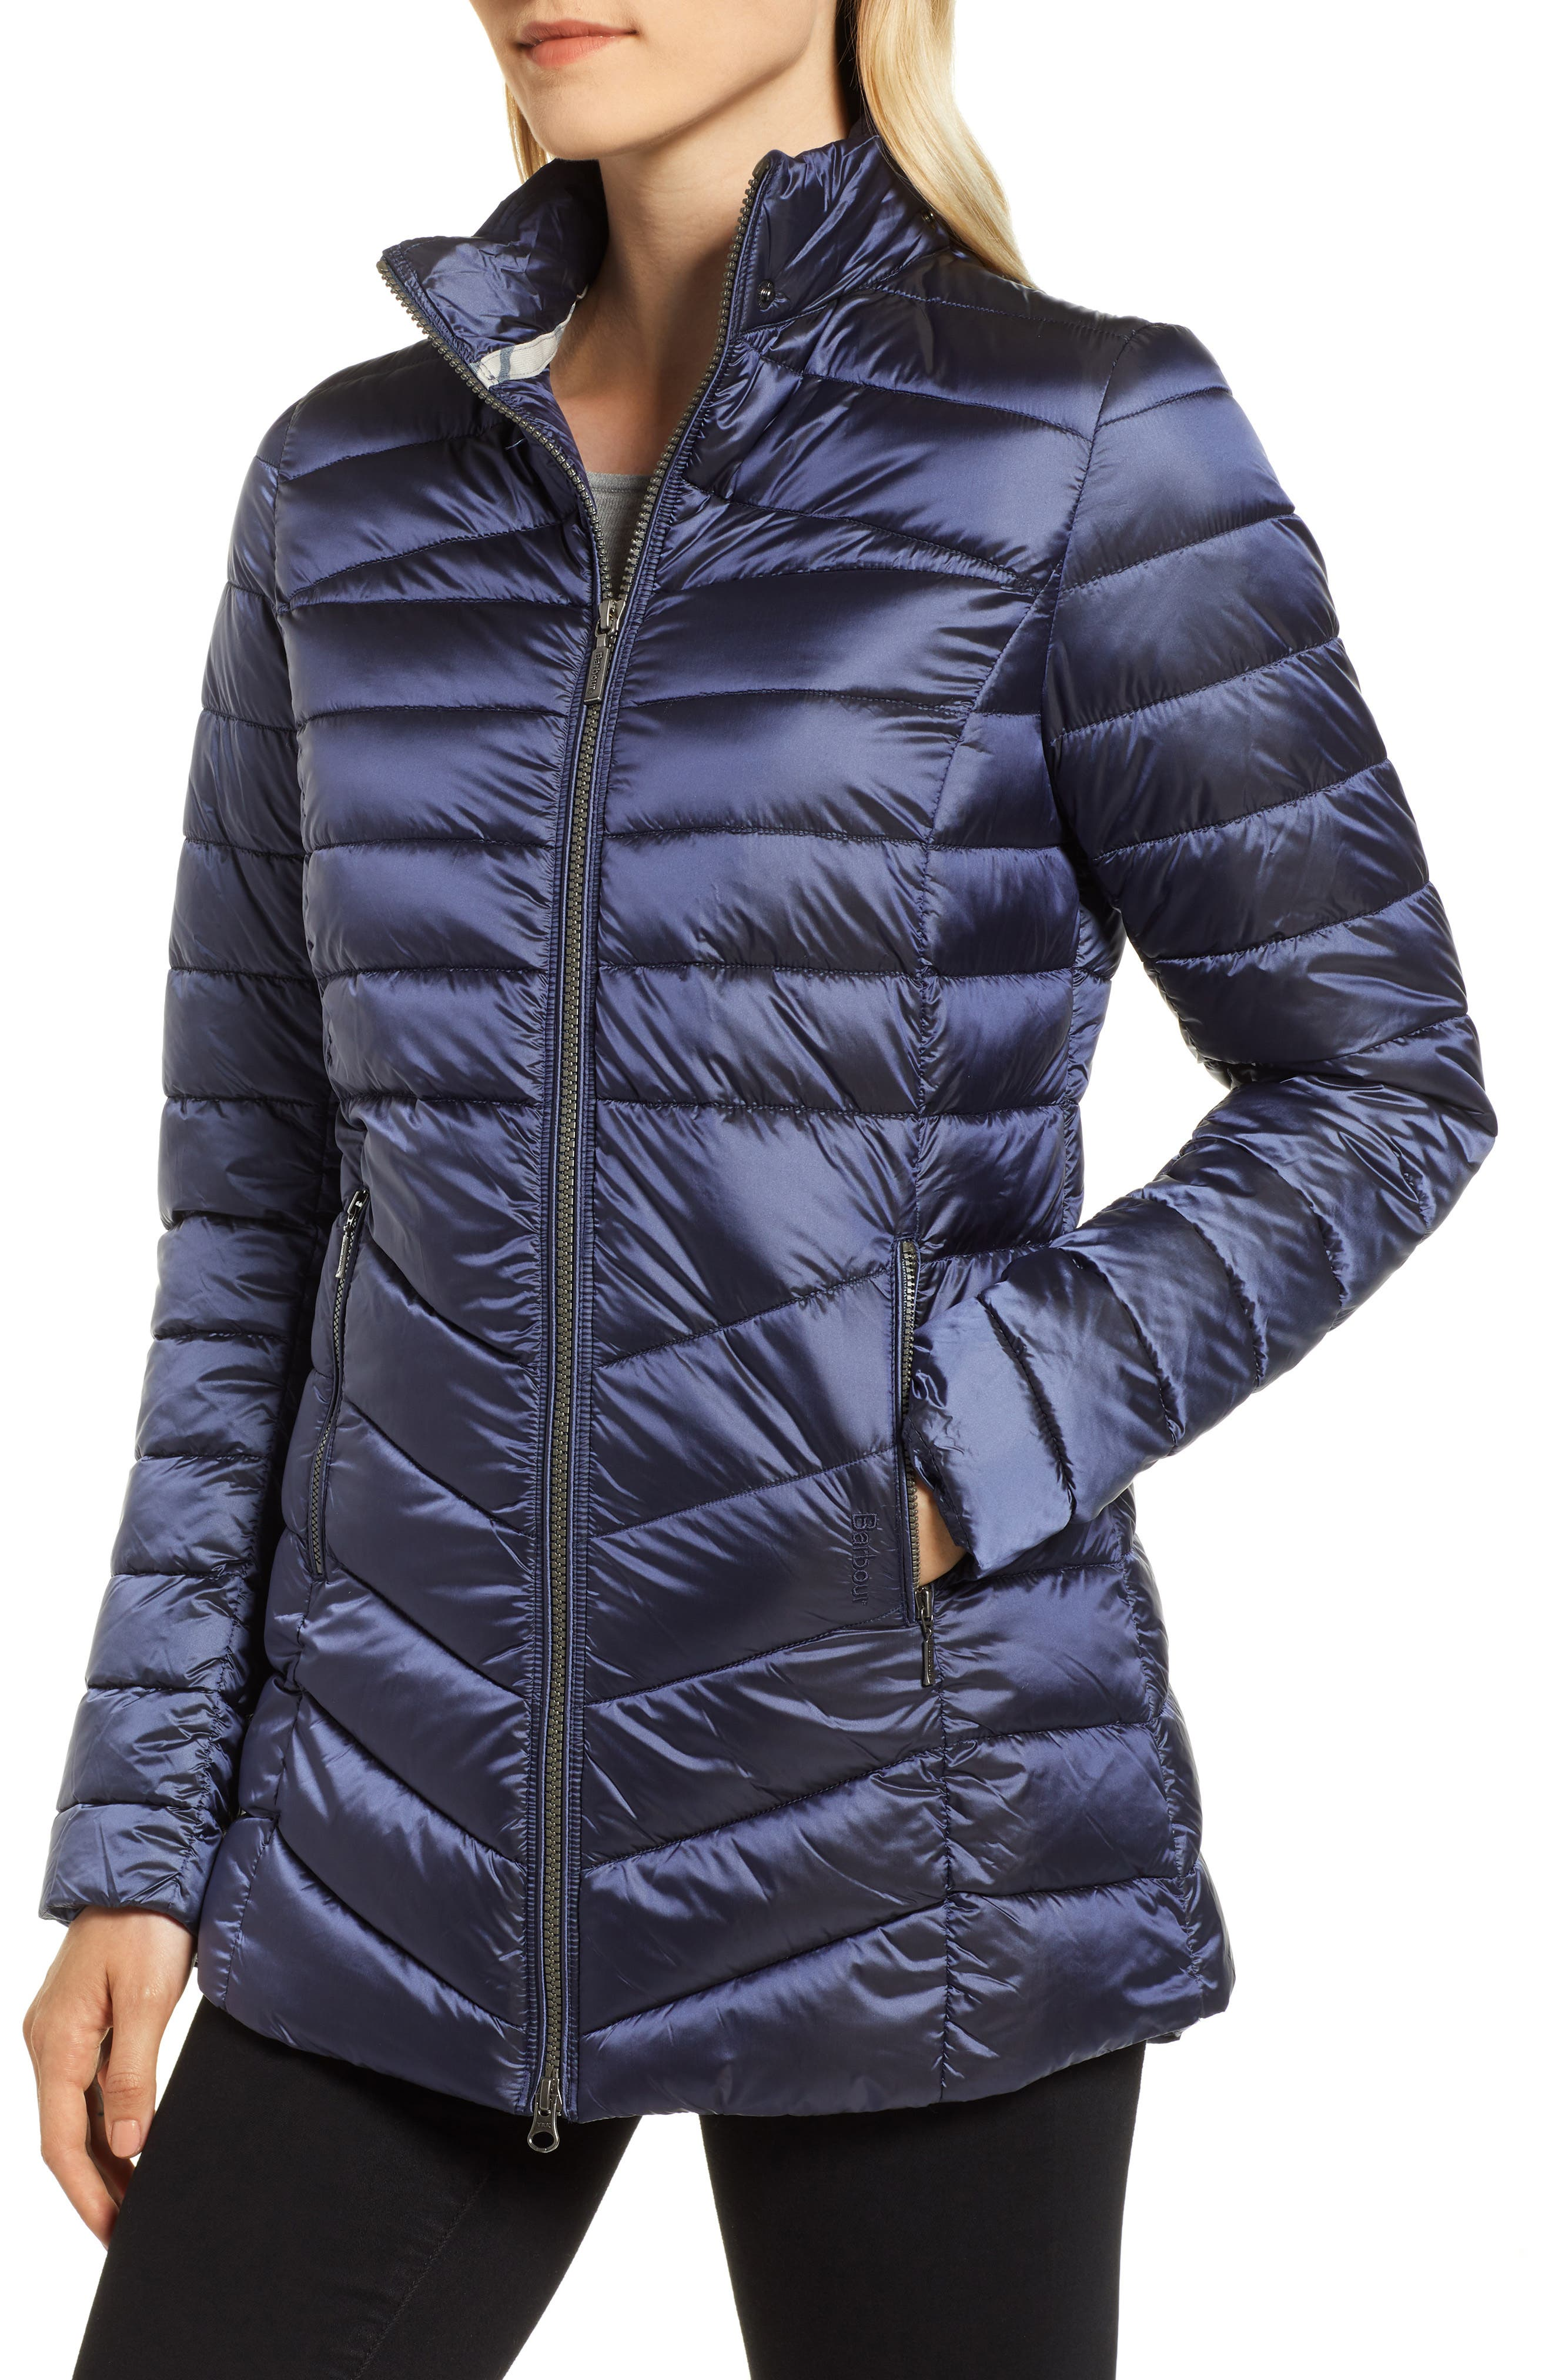 Ailith Quilted Jacket,                             Alternate thumbnail 4, color,                             ROYAL NAVY